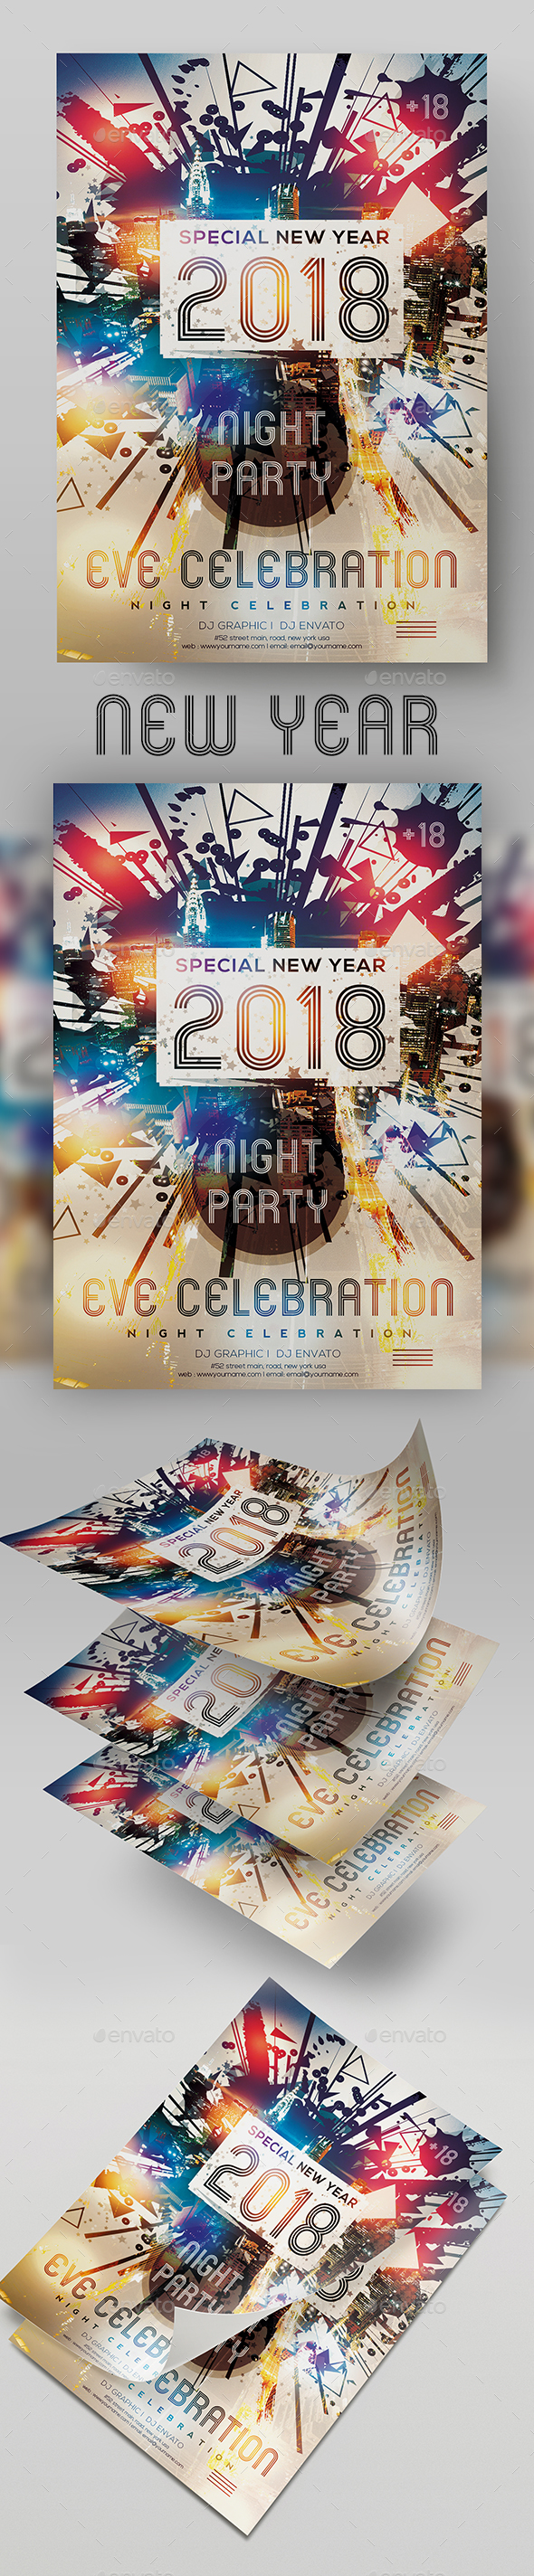 New Years Eve Gala Poster - Clubs & Parties Events